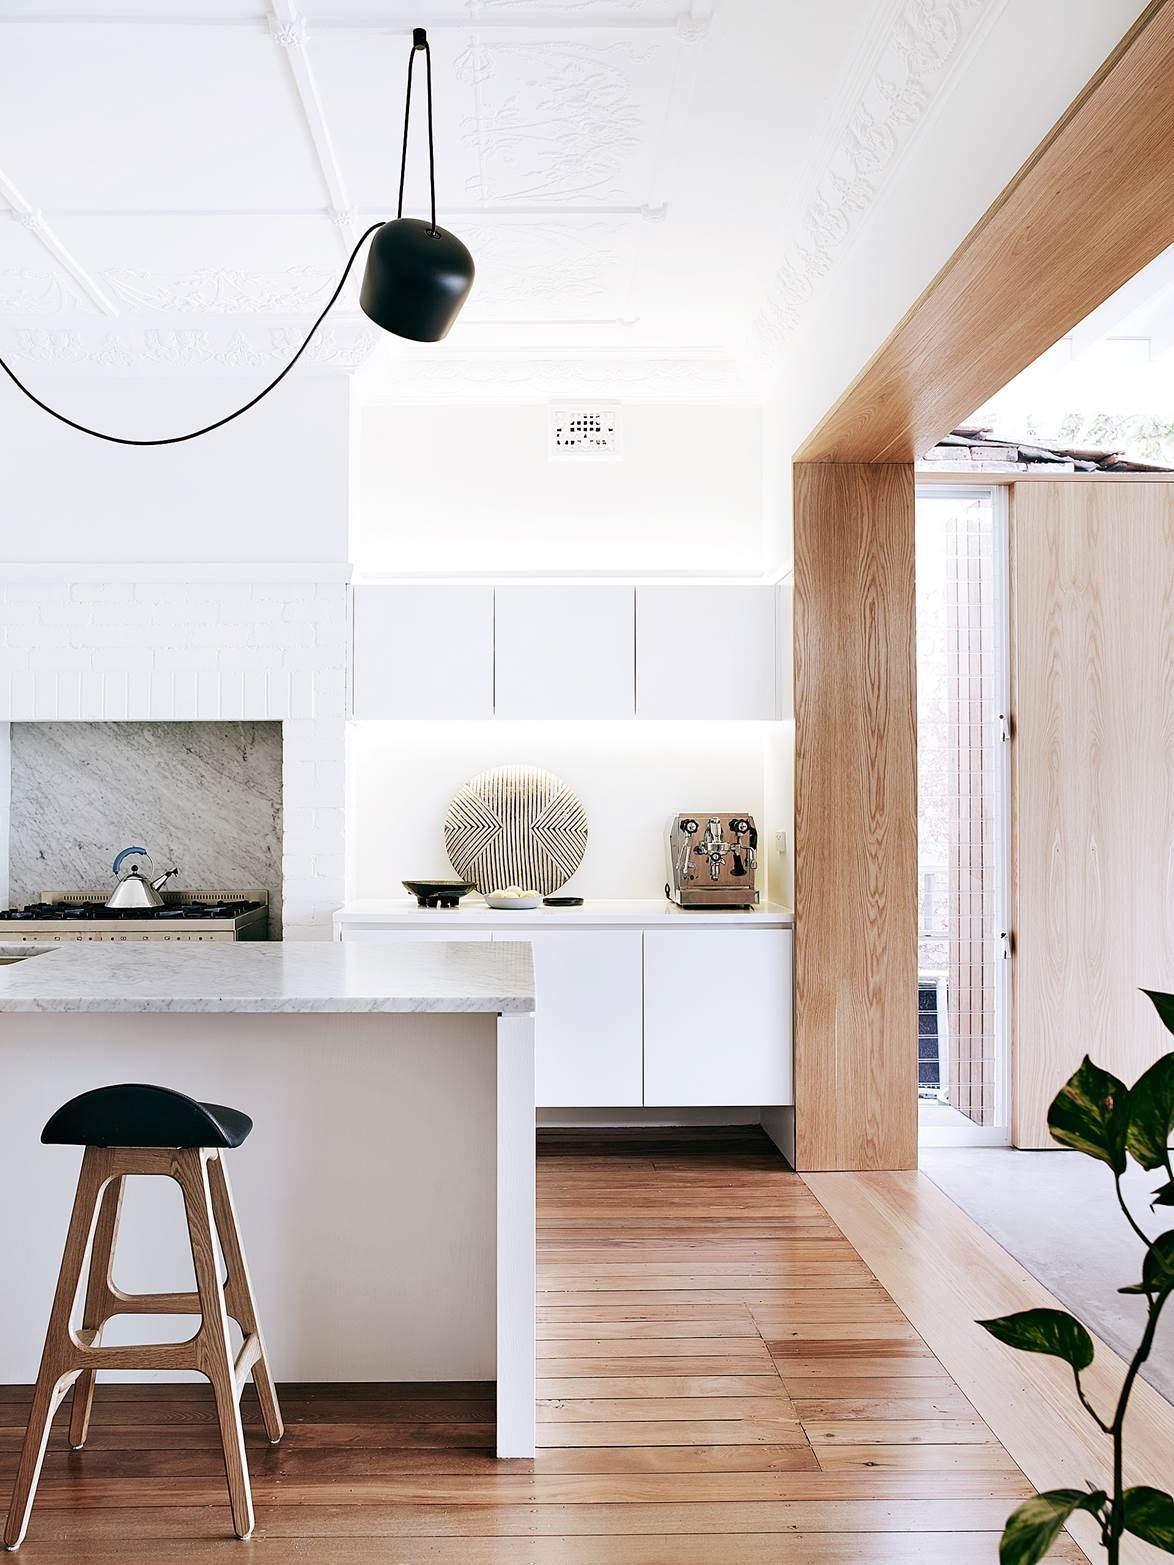 "In this [modern kitchen](https://www.homestolove.com.au/modern-kitchen-ideas-18756|target=""_blank""), shields and bowls the owners bought in Africa add personality despite the restrained palette. Lighting also plays an important role, adding warmth and functionality."